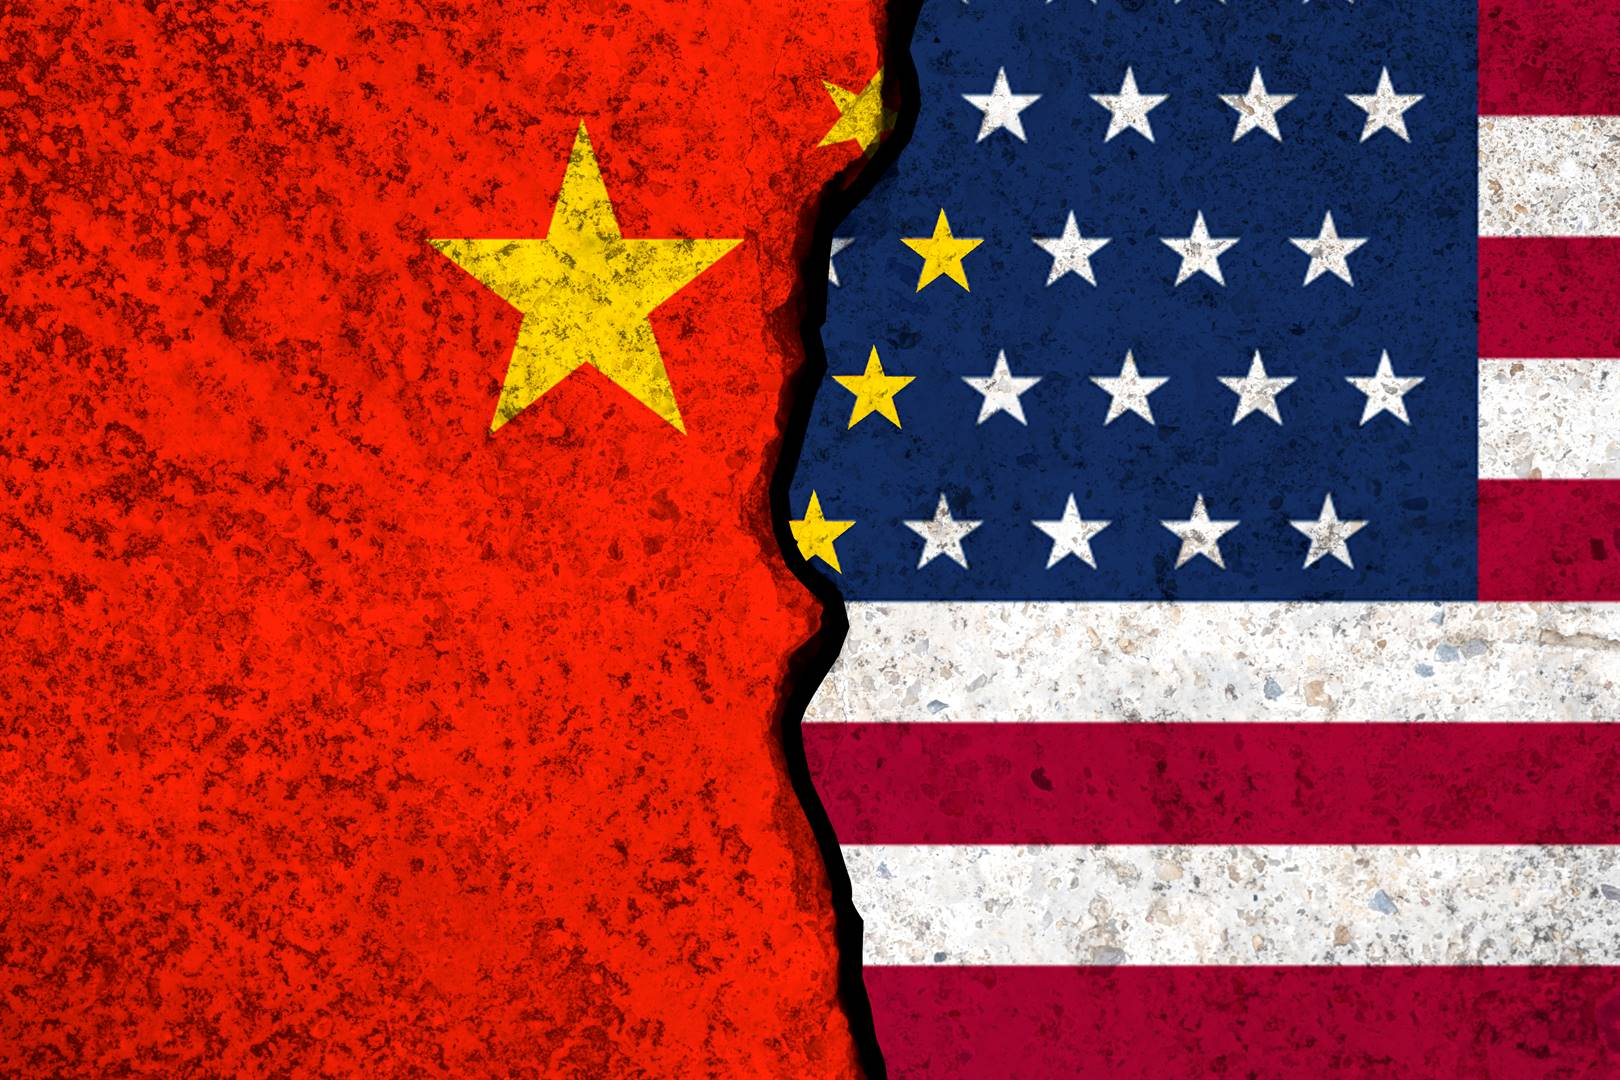 A decoupling of economic and political ties between the US and China is likely to be one of the most important drivers of financial markets in the emerging world during the next decade. Picture: istock